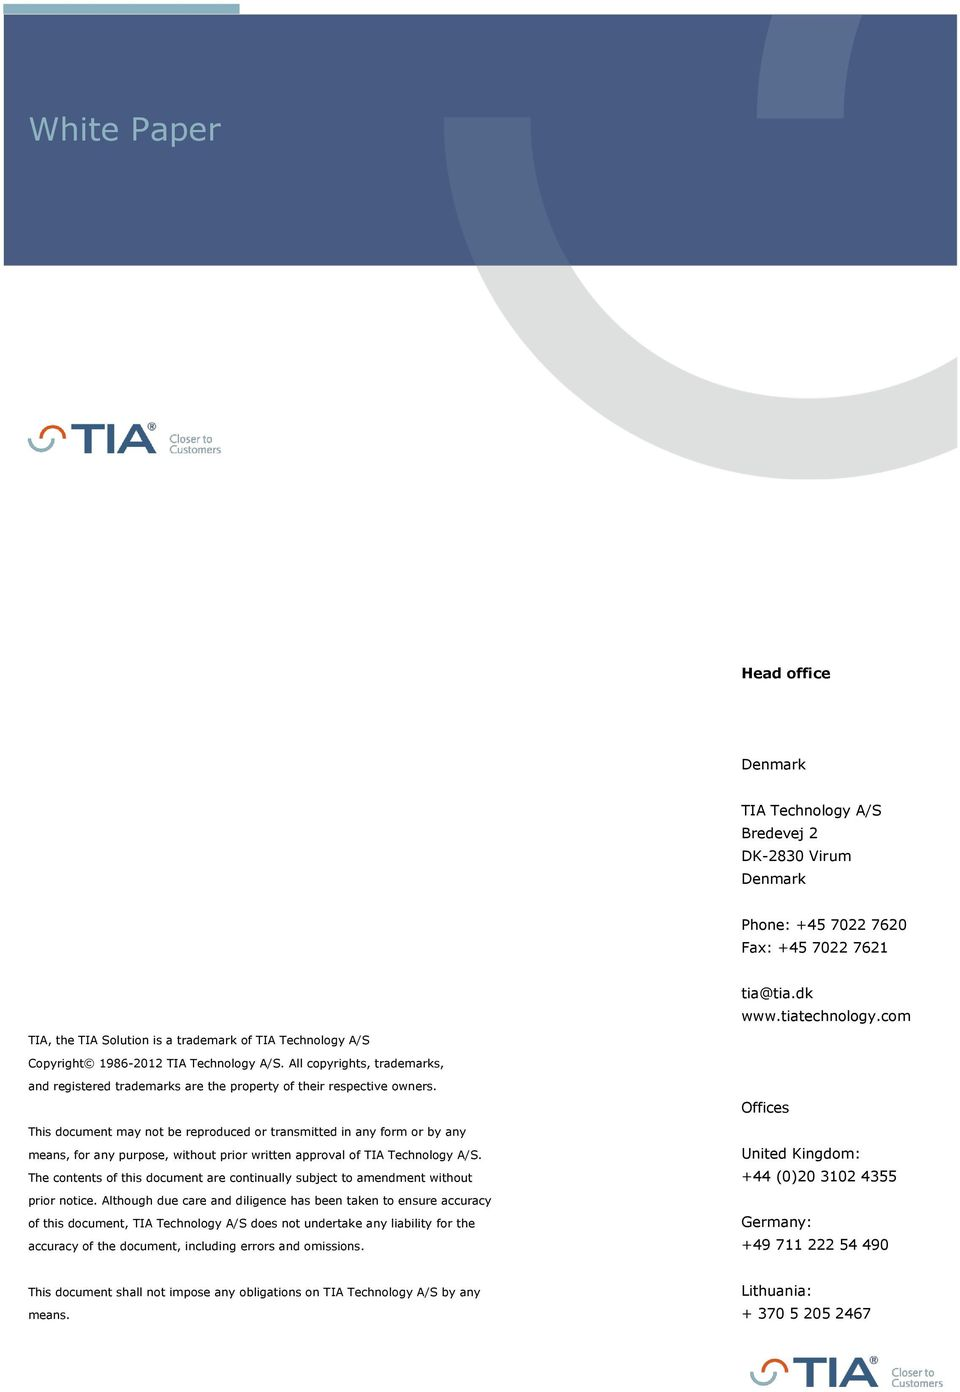 This document may not be reproduced or transmitted in any form or by any means, for any purpose, without prior written approval of TIA Technology A/S.